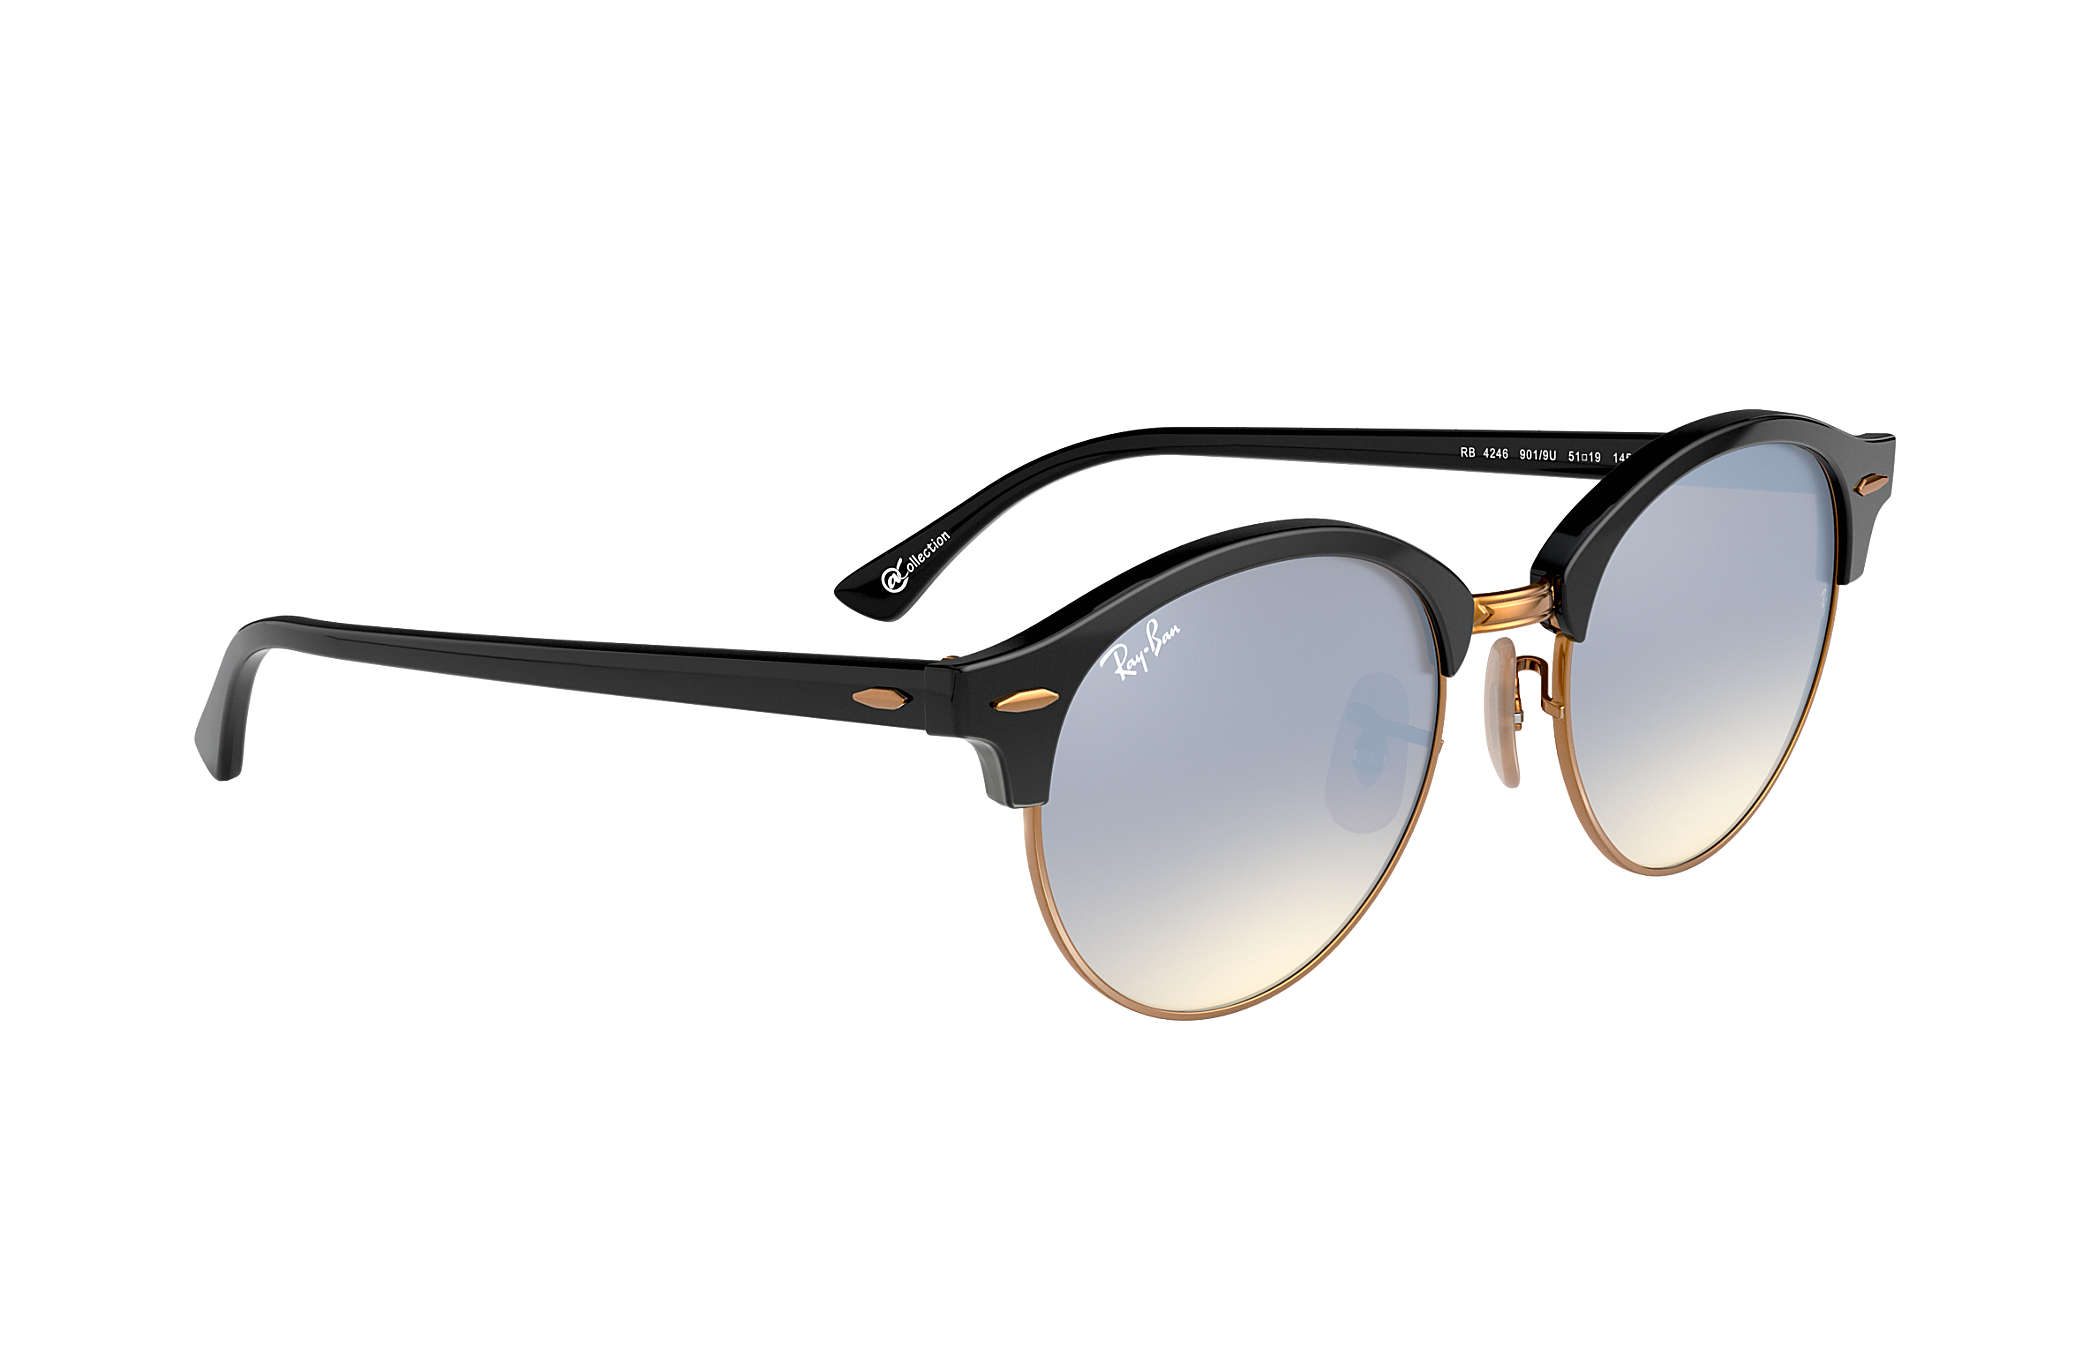 a5f5eb87afe01 Ray-Ban Clubround  collection RB4246 Black - Acetate - Silver Lenses ...